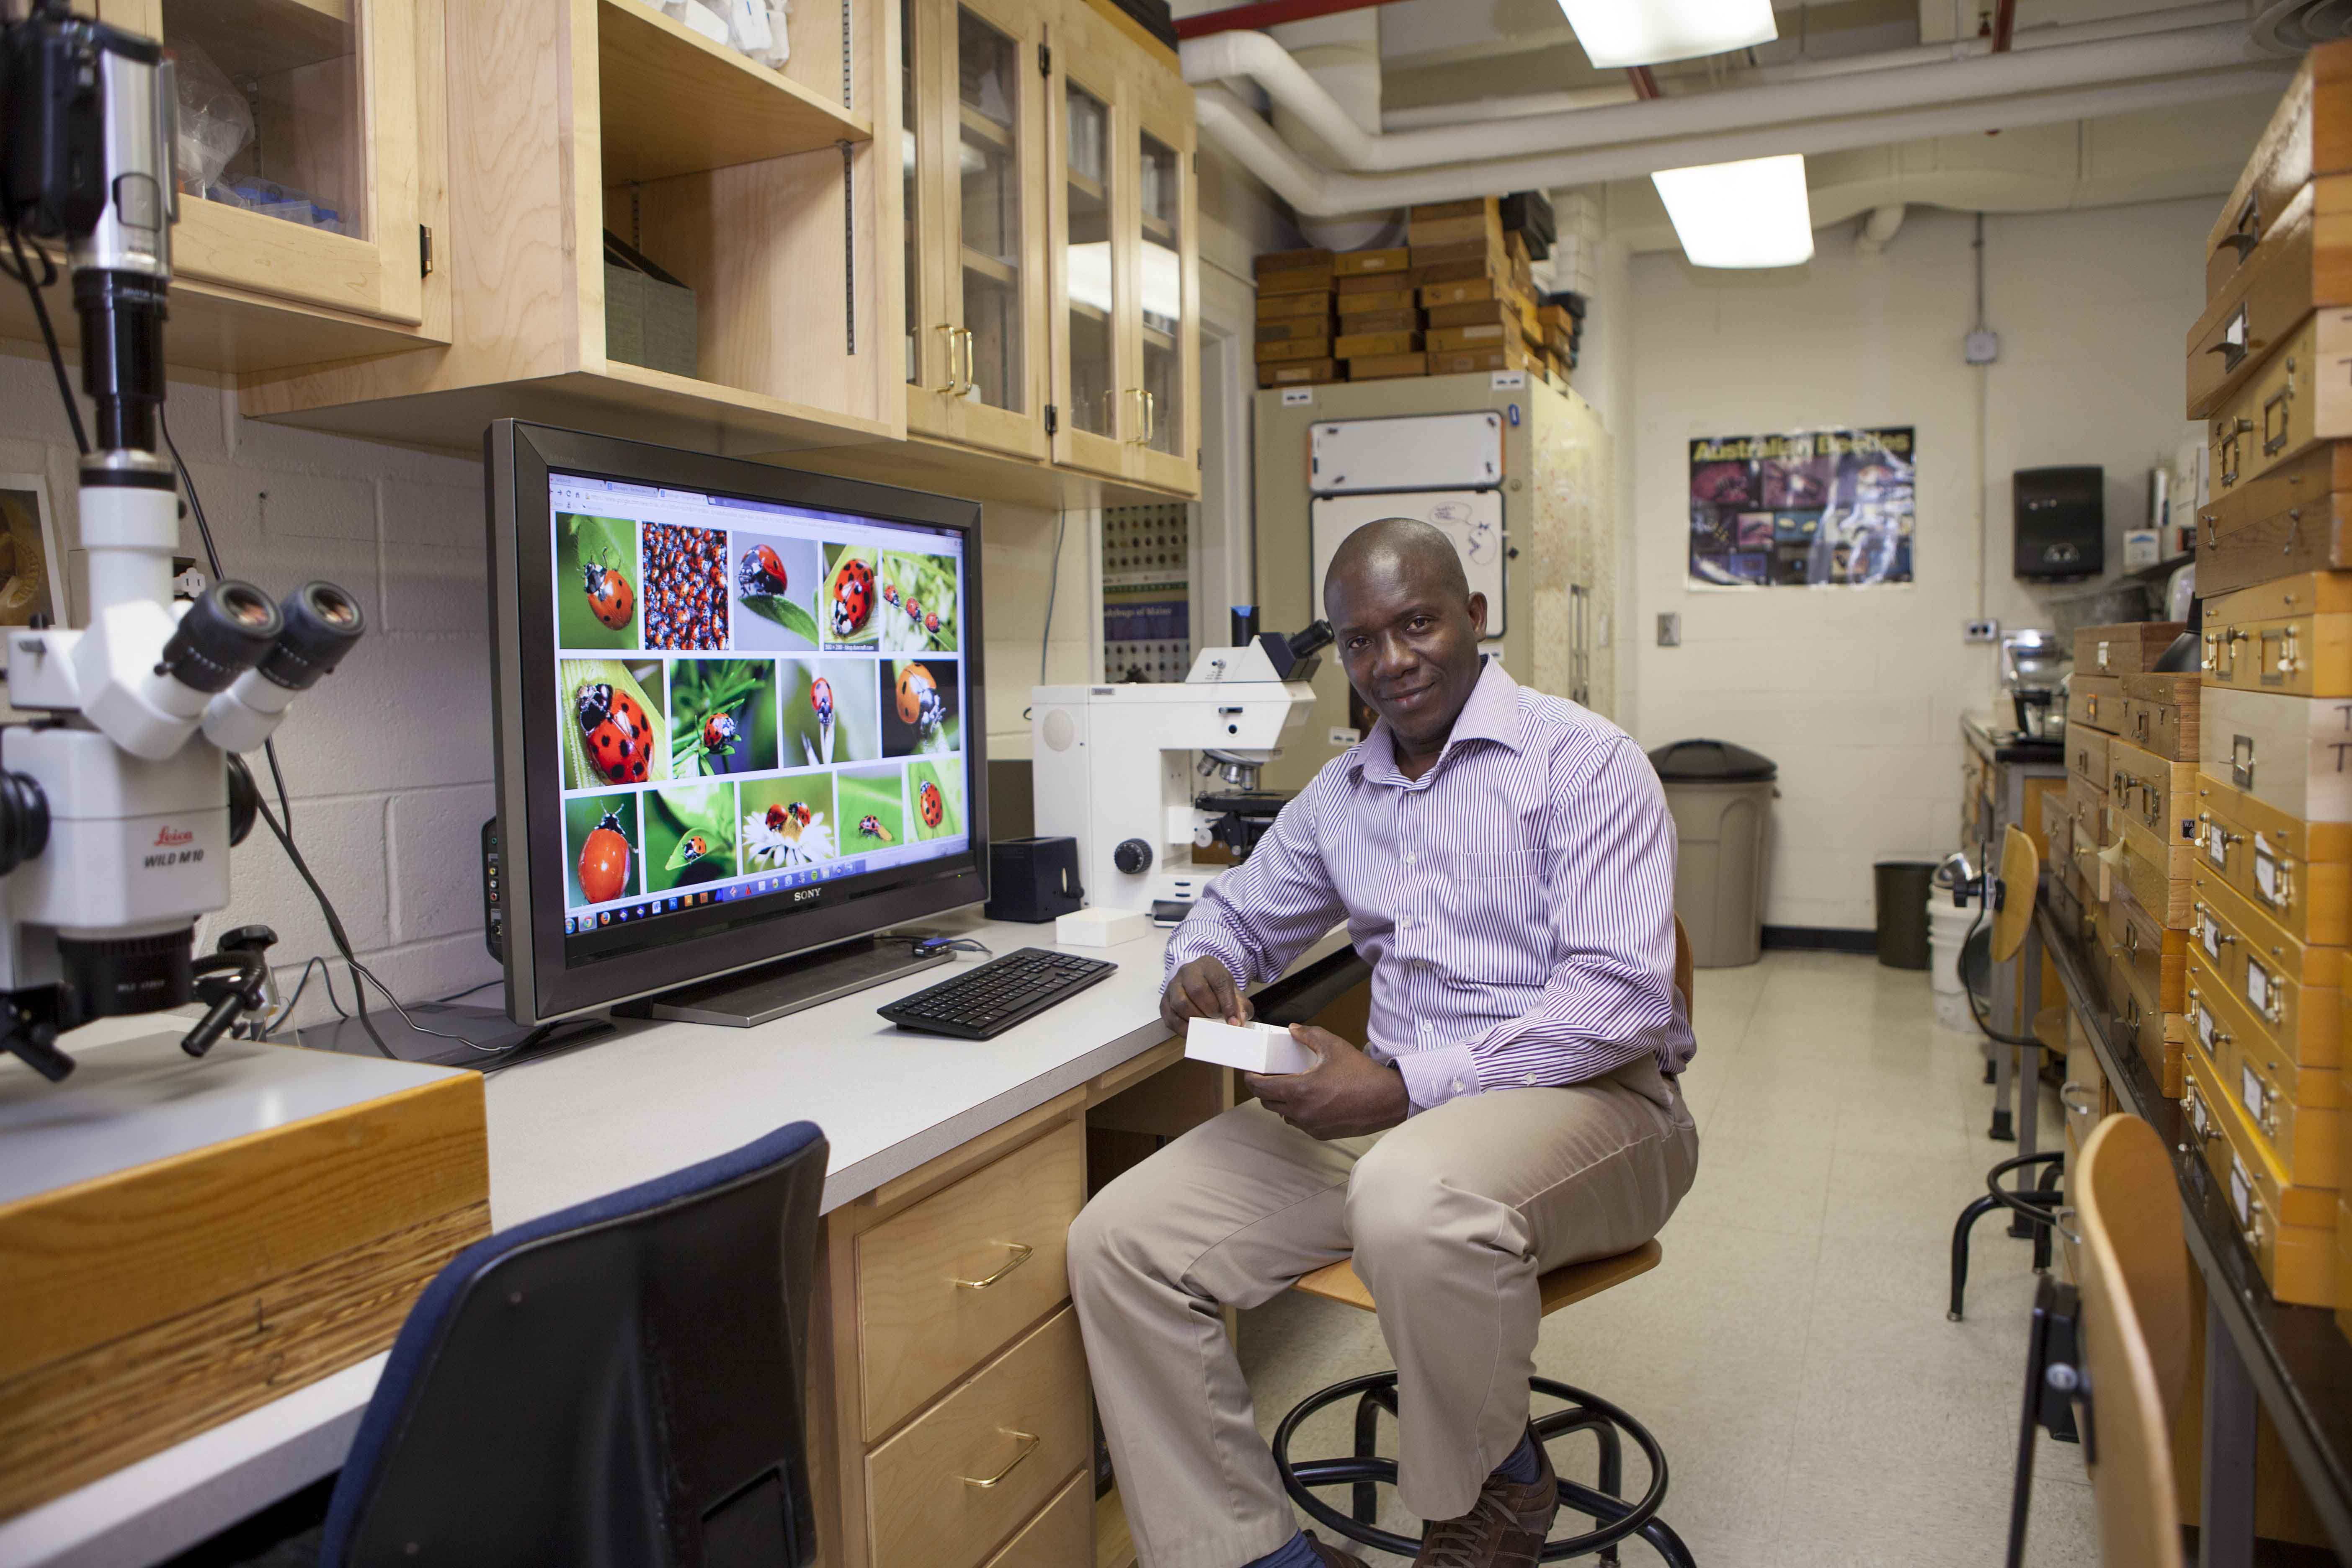 Brad K Hounkpati is shown in his UGA office with images of his lady bug collection shown on his computer screen.